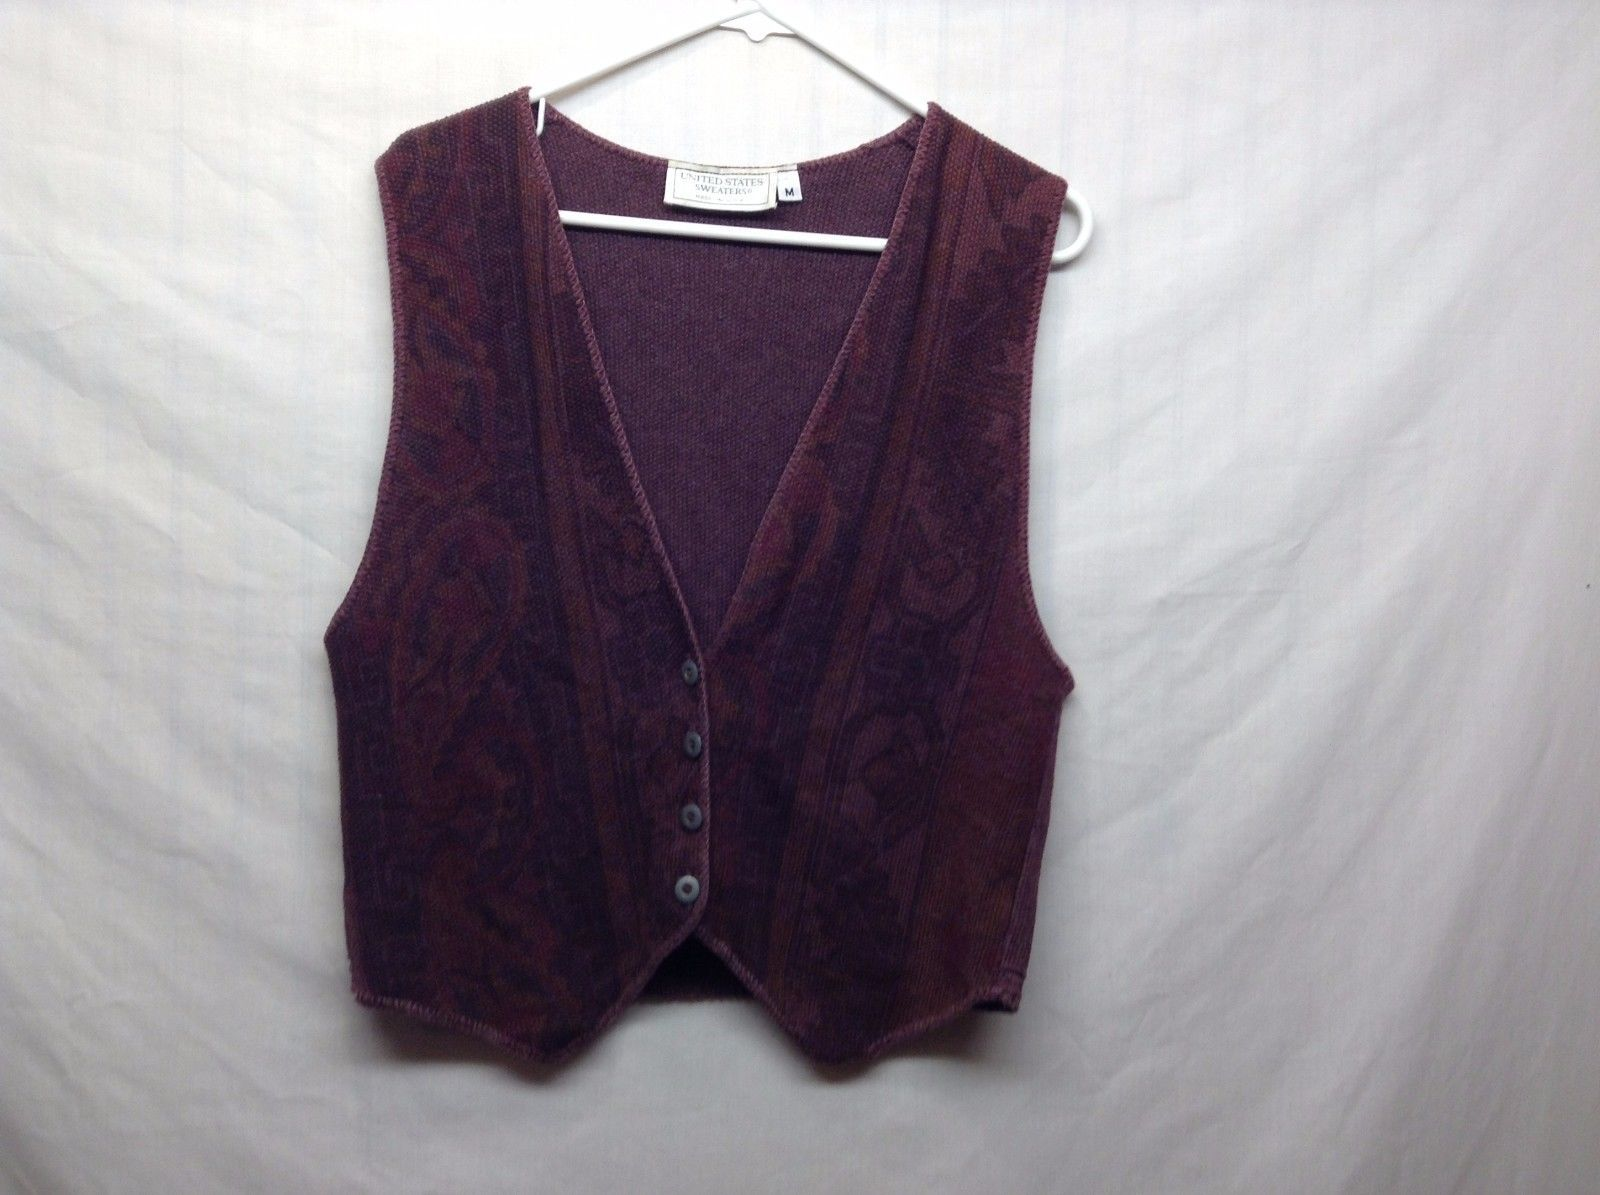 United States Sweaters Purple Patterned Button Up Vest Sz M